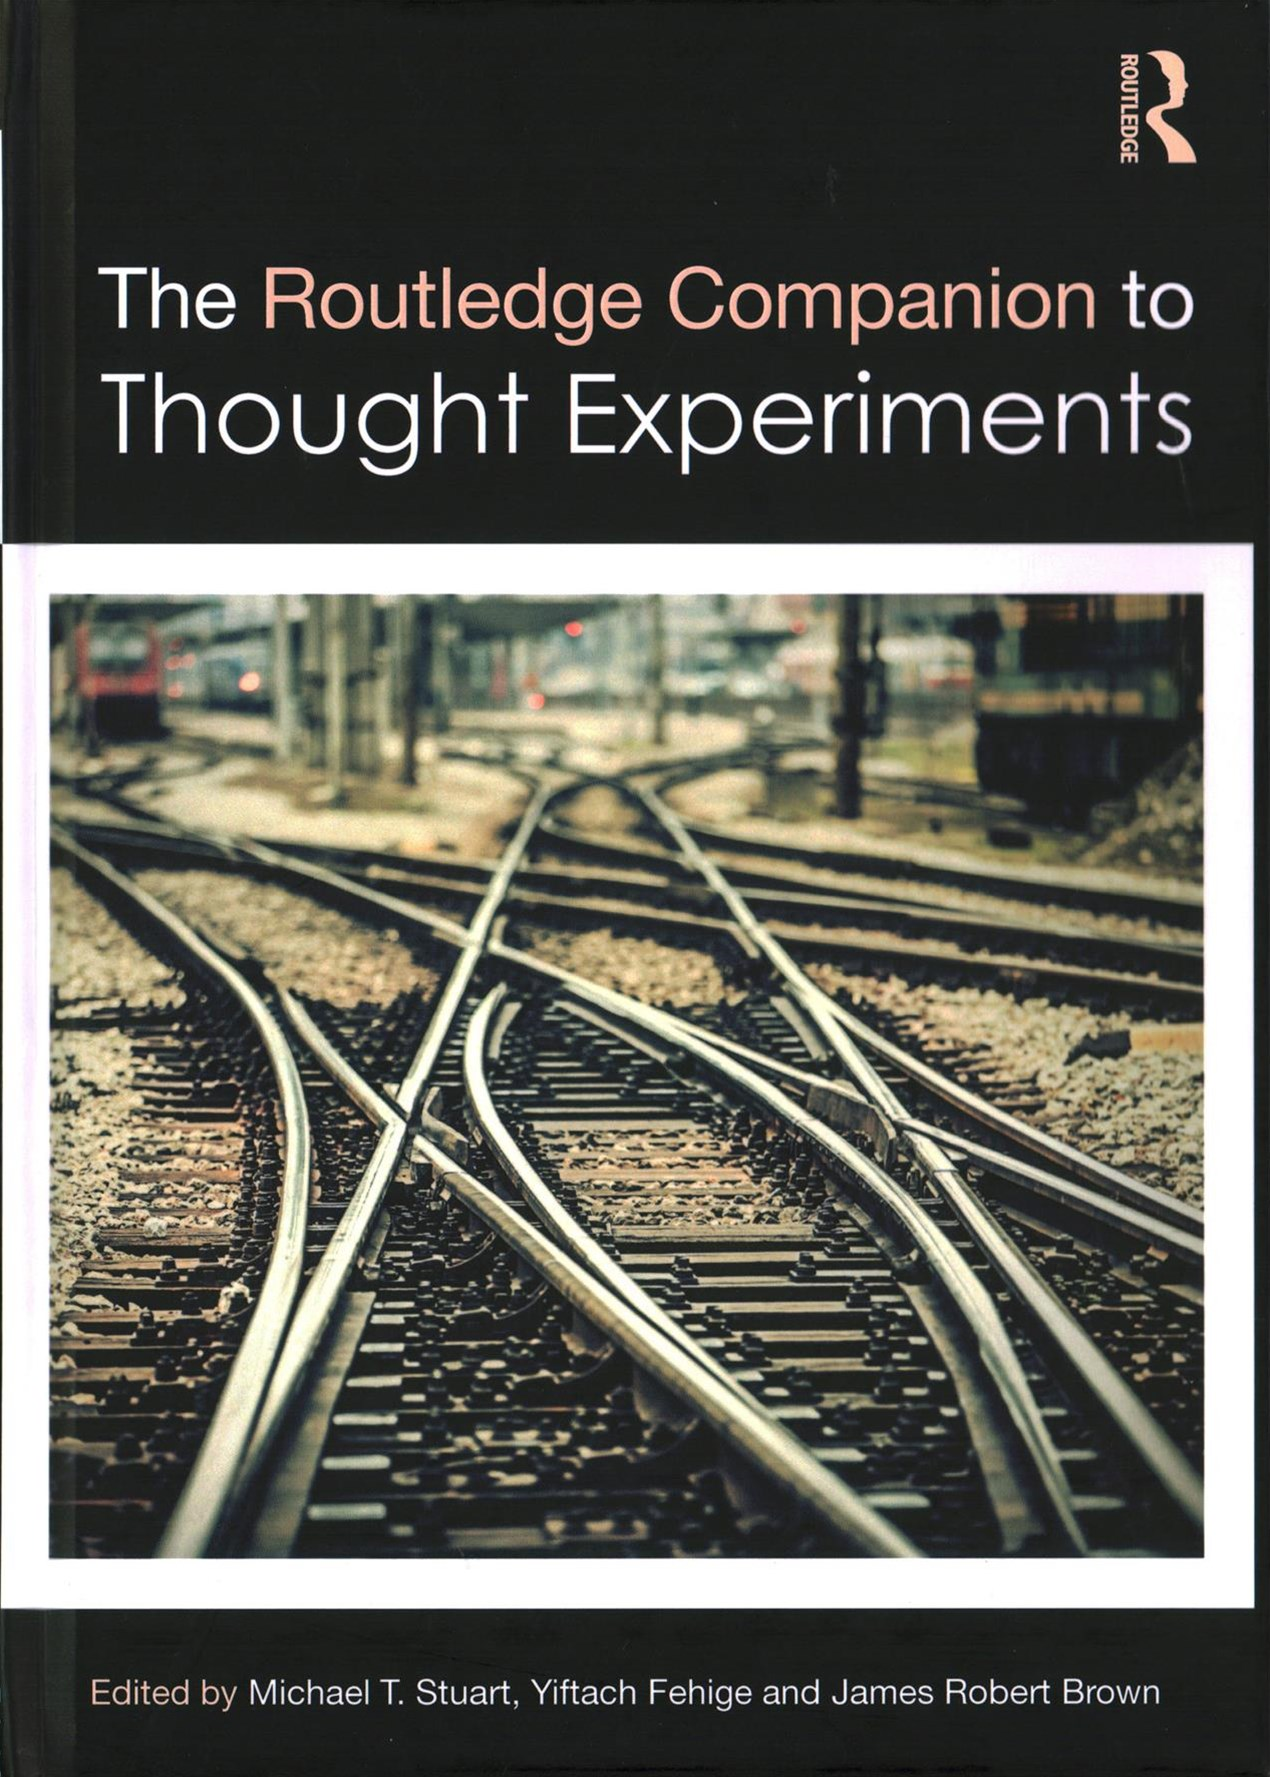 Routledge Companion to Thought Experiments